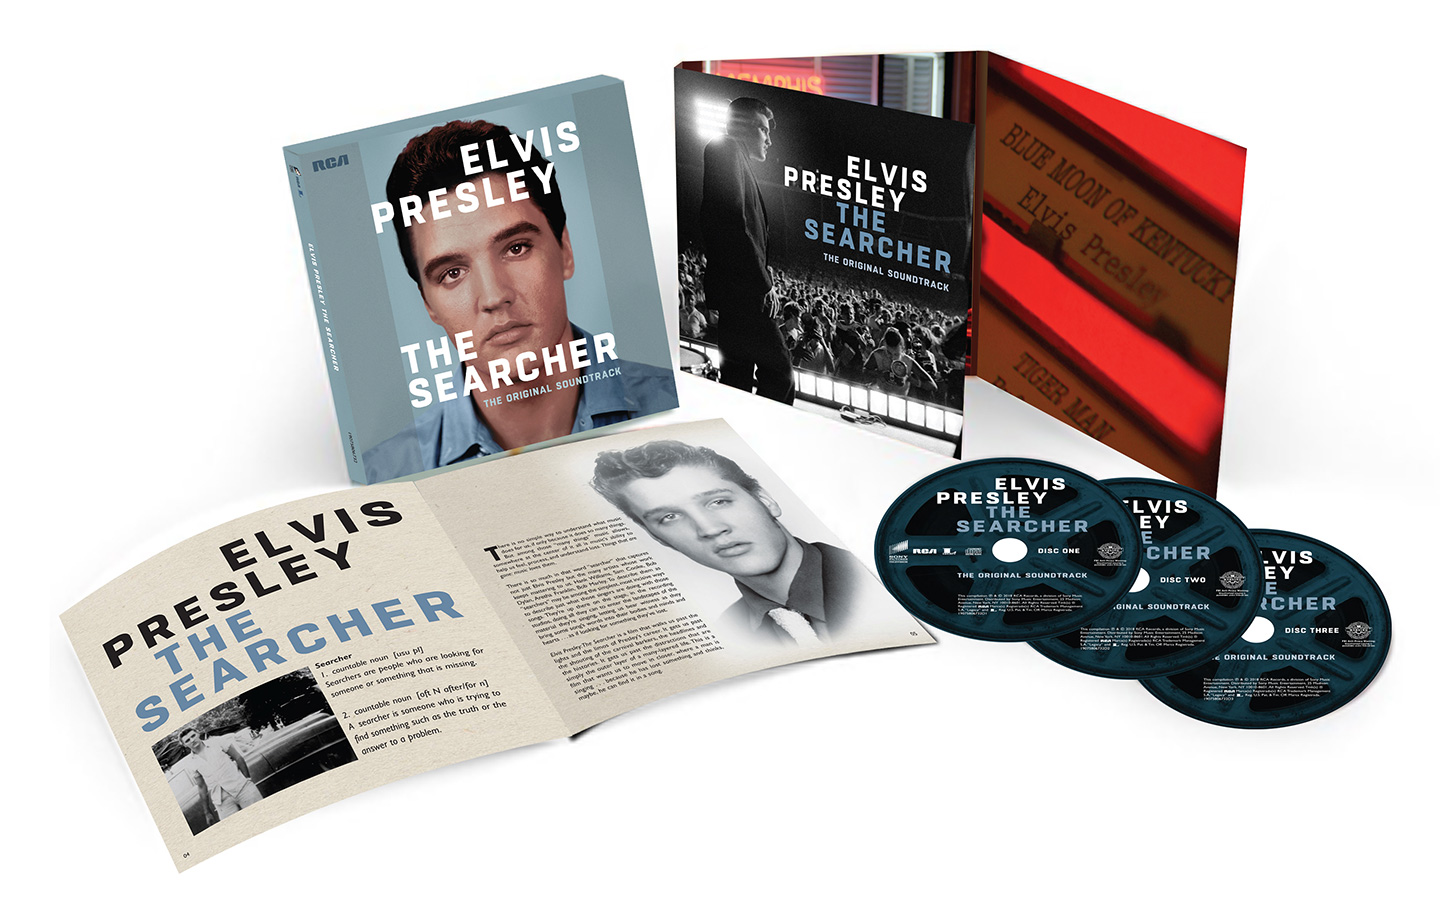 Elvis Presley: The Searcher (The Original Soundtrack) 3CD set